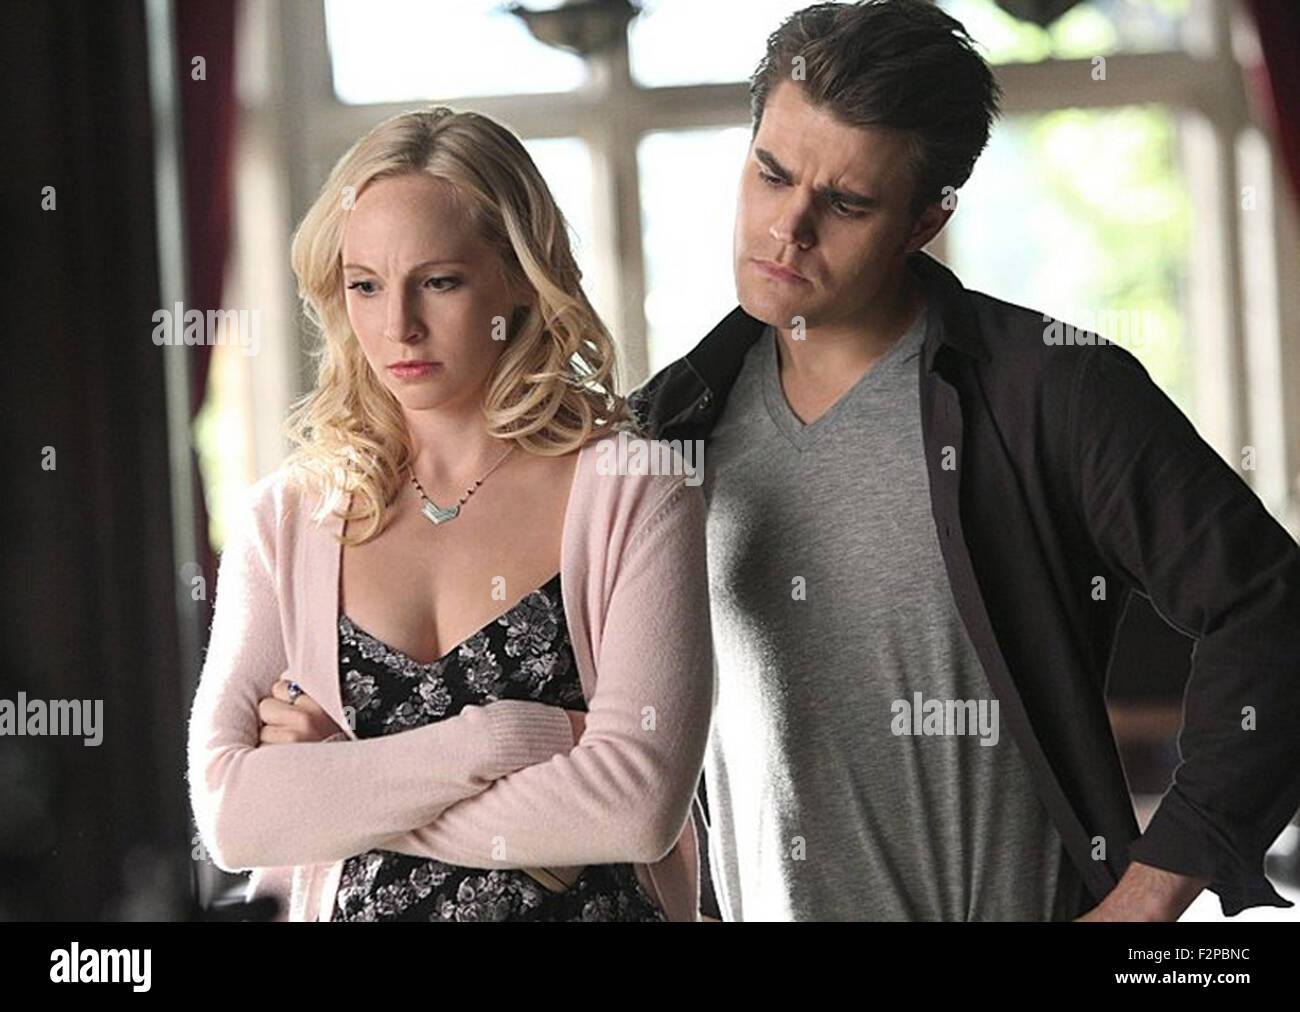 THE VAMPIRE DIARIES, THE DAY I TRIED TO LIVE  2009 CW production with Candice Accola and Paul Wesley - Stock Image